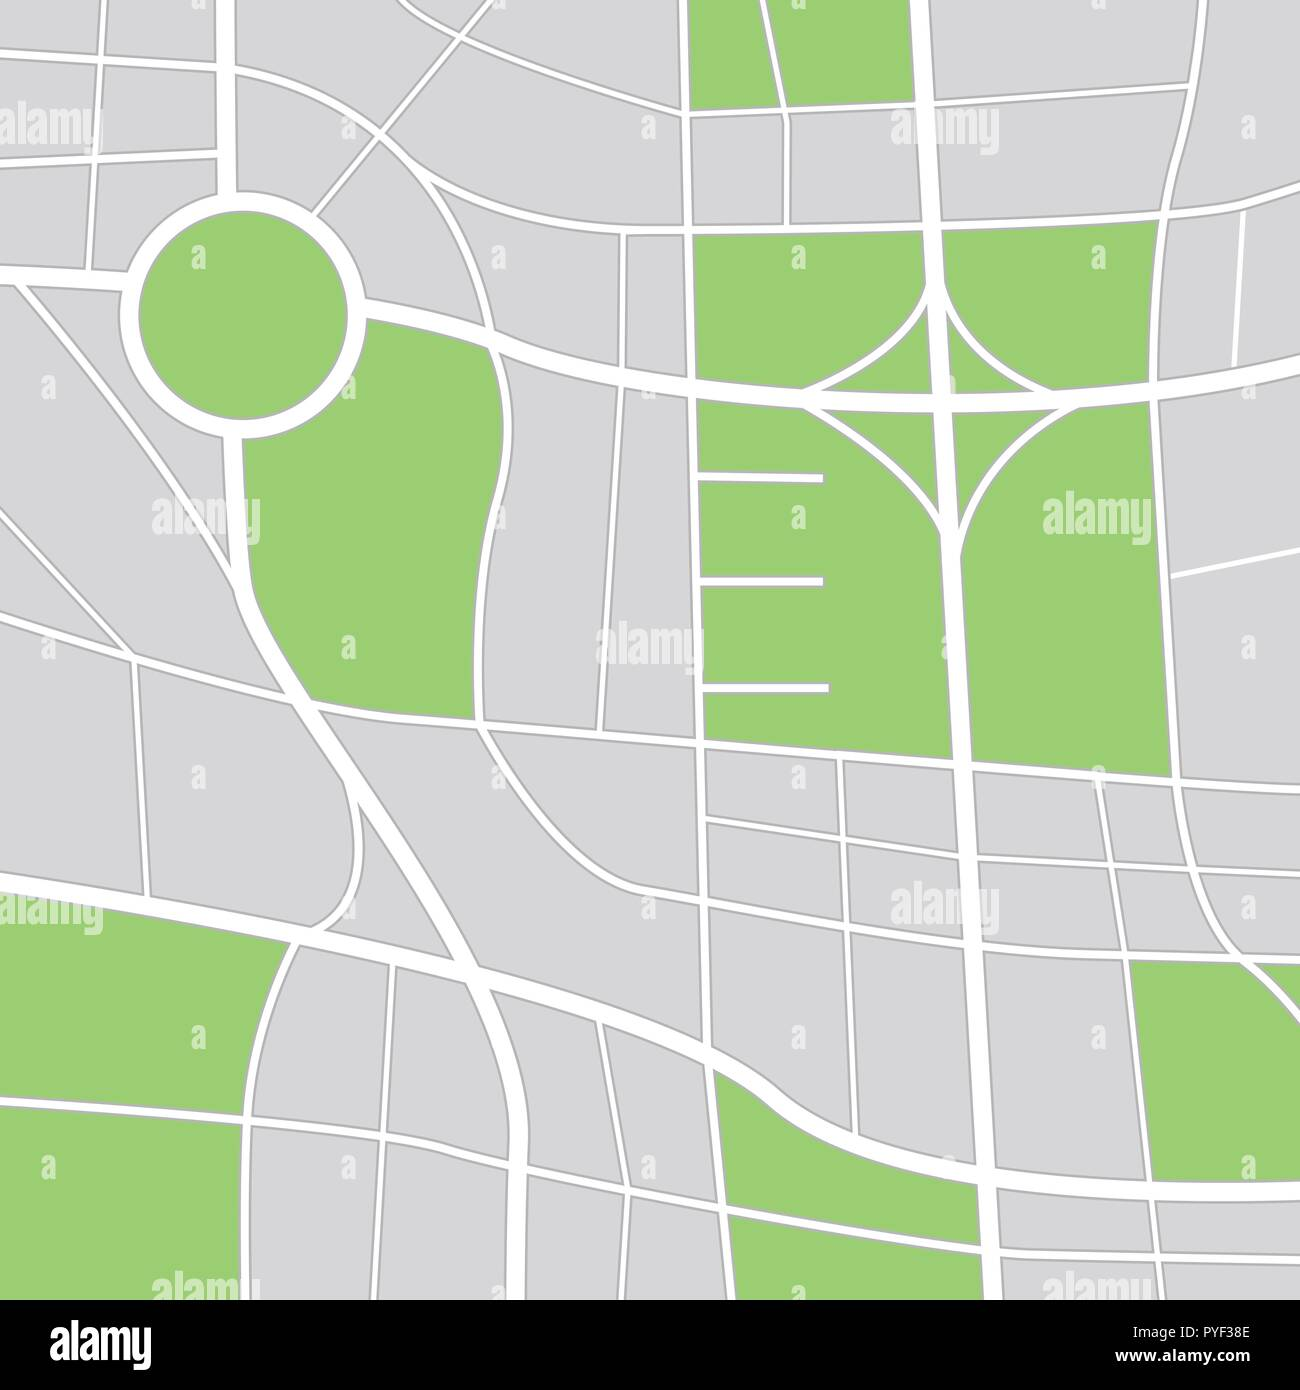 Abstract city map. Zoom out view - Stock Vector